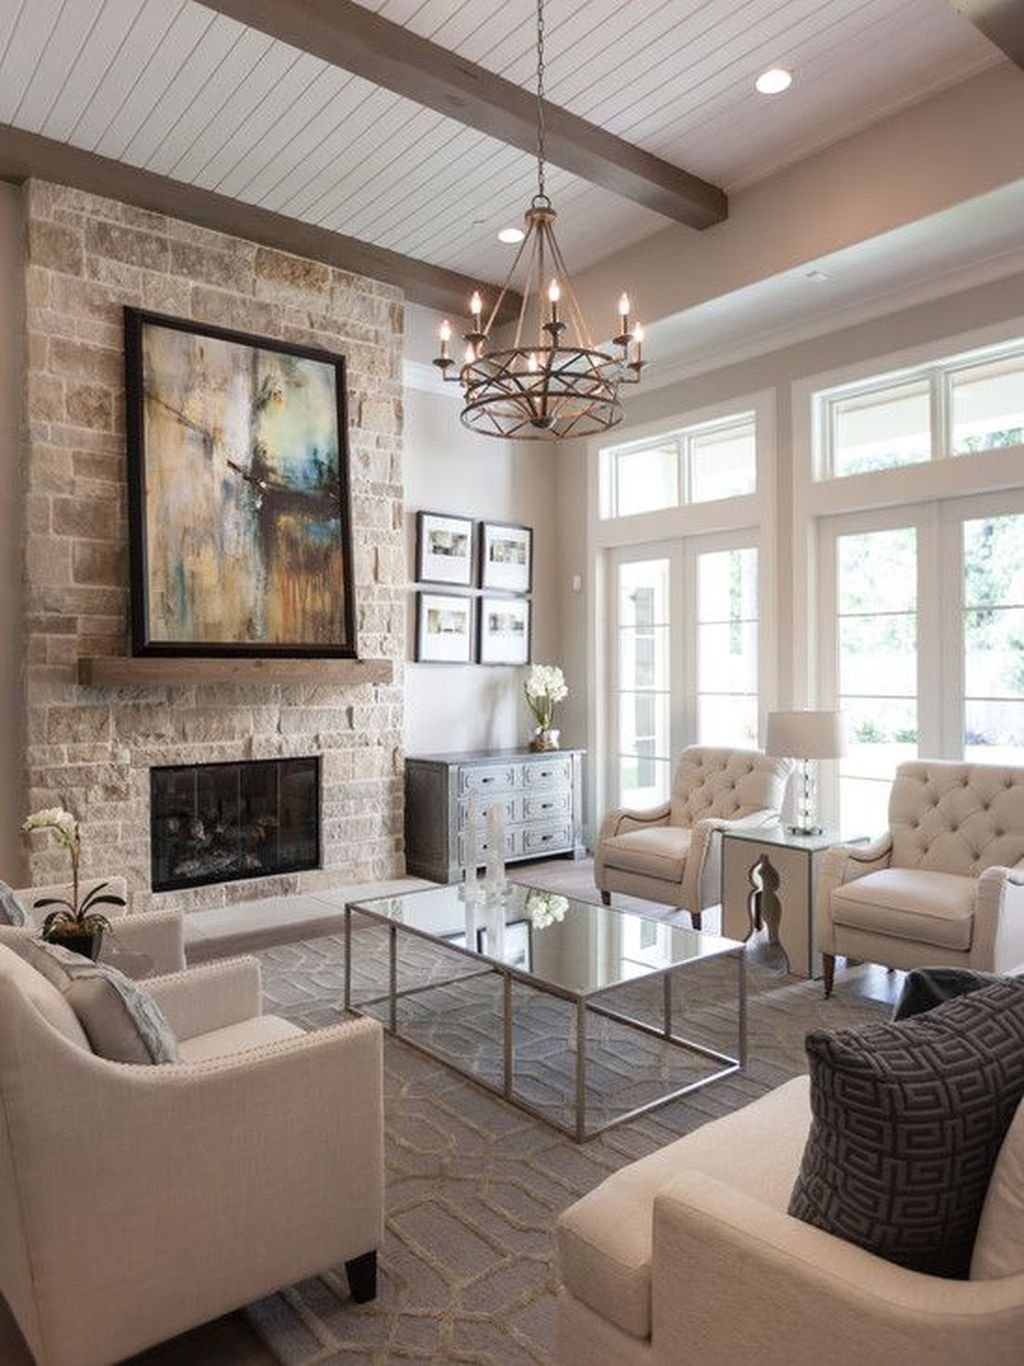 15 Wonderful Transitional Living Room Designs To Refresh: Pin By Carol Garrison On Stonehurst House